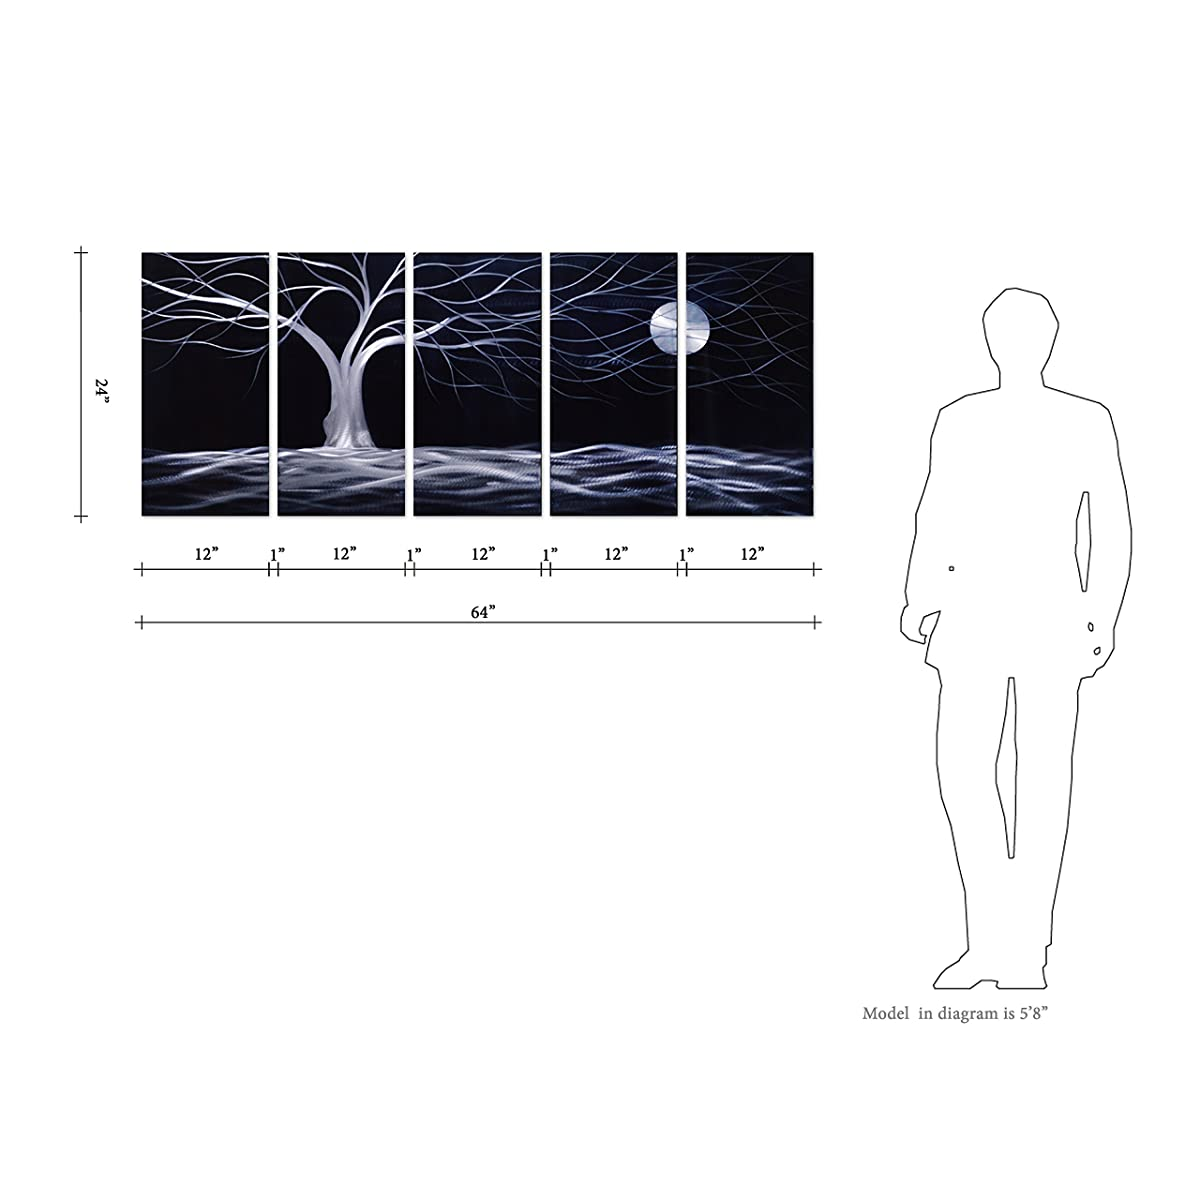 "Pure Art Moonlight Landscape Tree and Moon - Black and White Abstract Large Metal Wall Art Decor - Set of 5 Decorative Hanging Sculpture - Modern Artwork Measures 64"" x 24"""